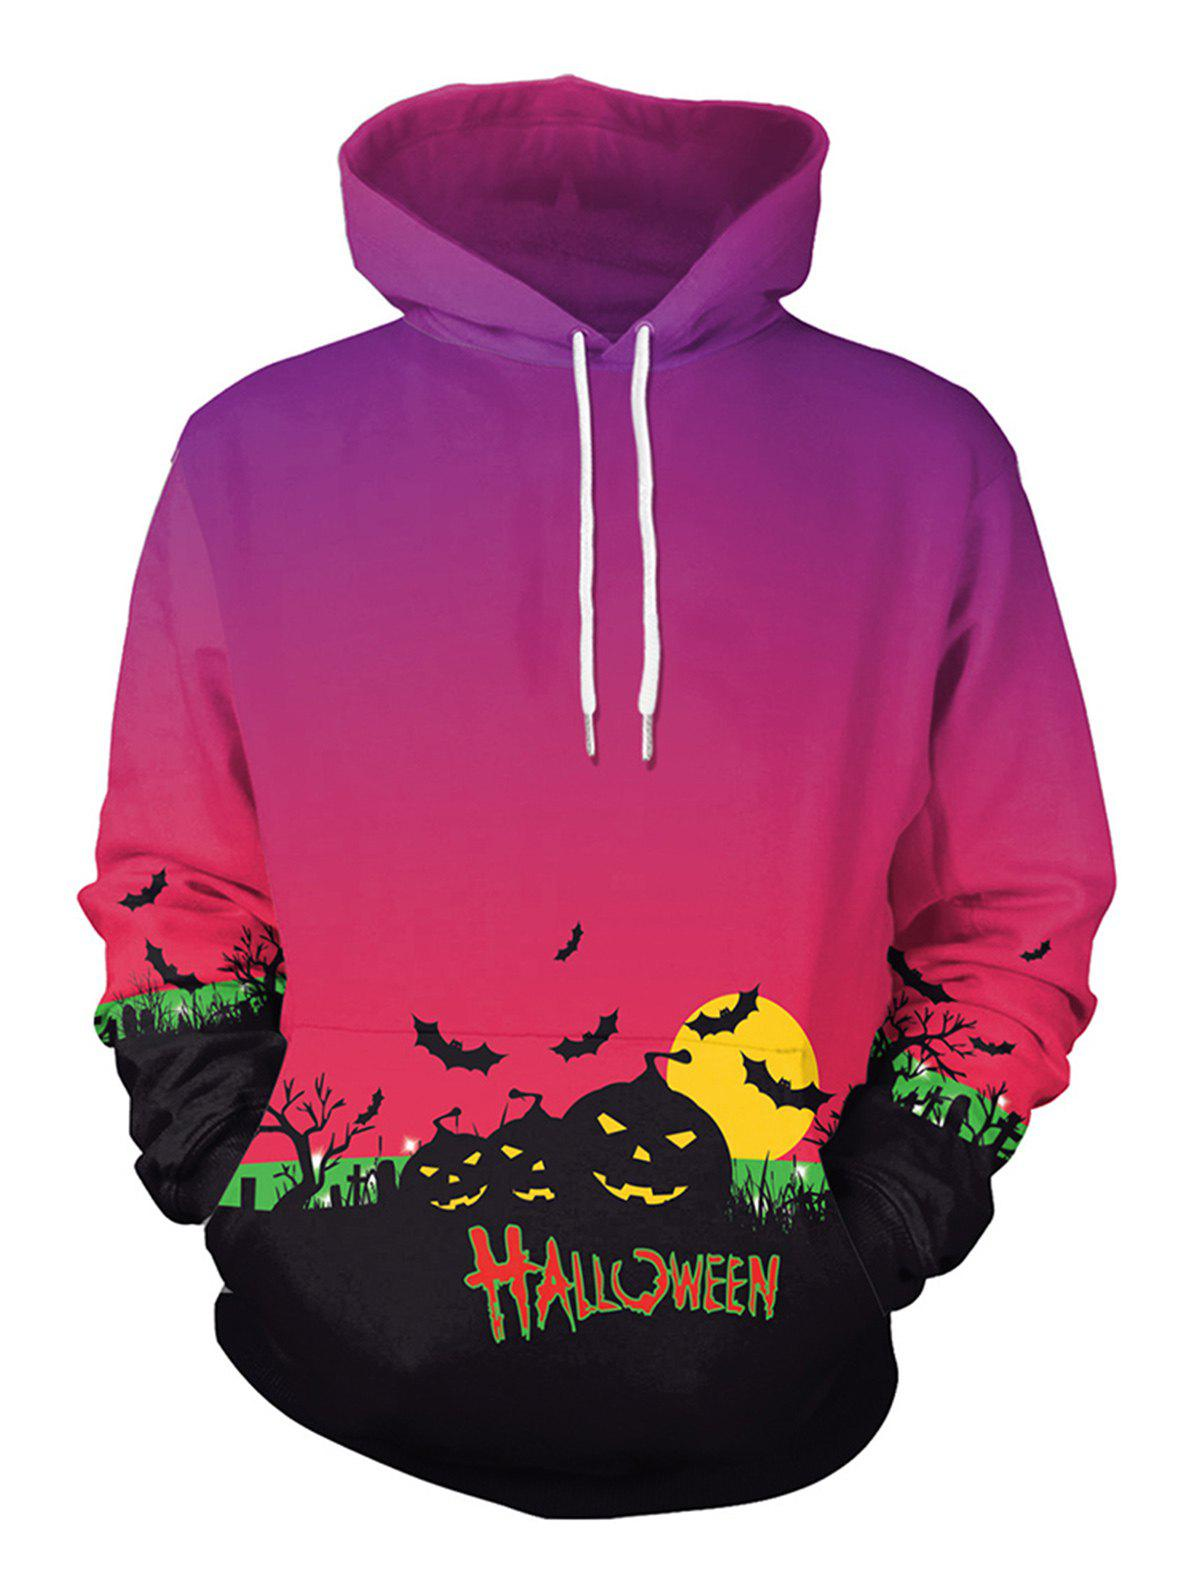 New Halloween  Unisex Casual 3D Patterns Print Athletic Sweaters  Hoodies Sweatshirts